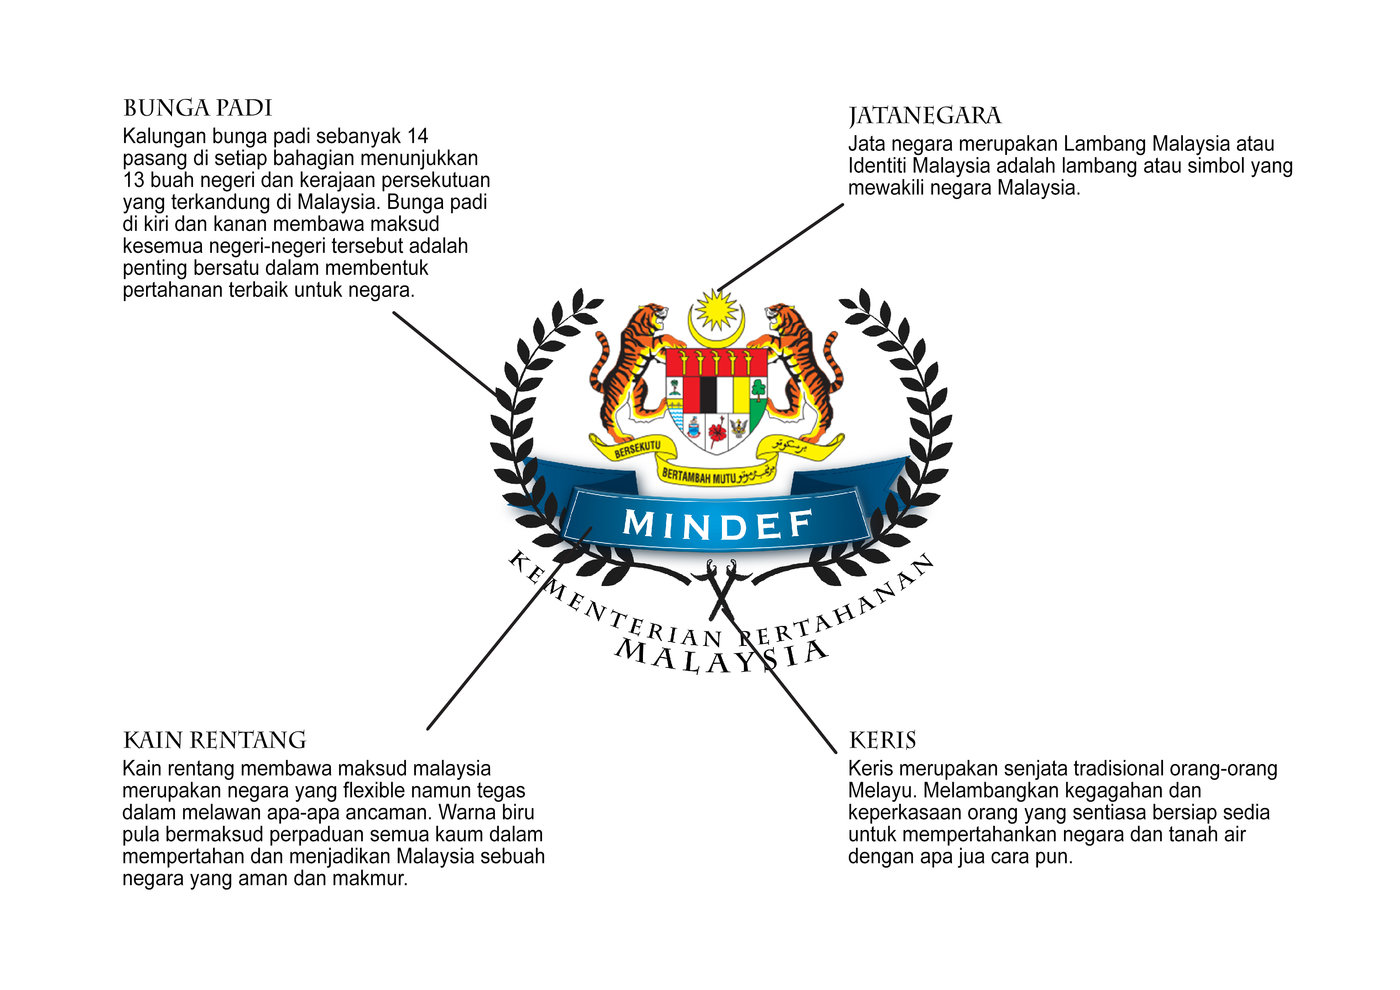 Logo mindef 2 by muhammad shafiq mokhtar baharudin at coroflot be the first to comment on this project ccuart Choice Image